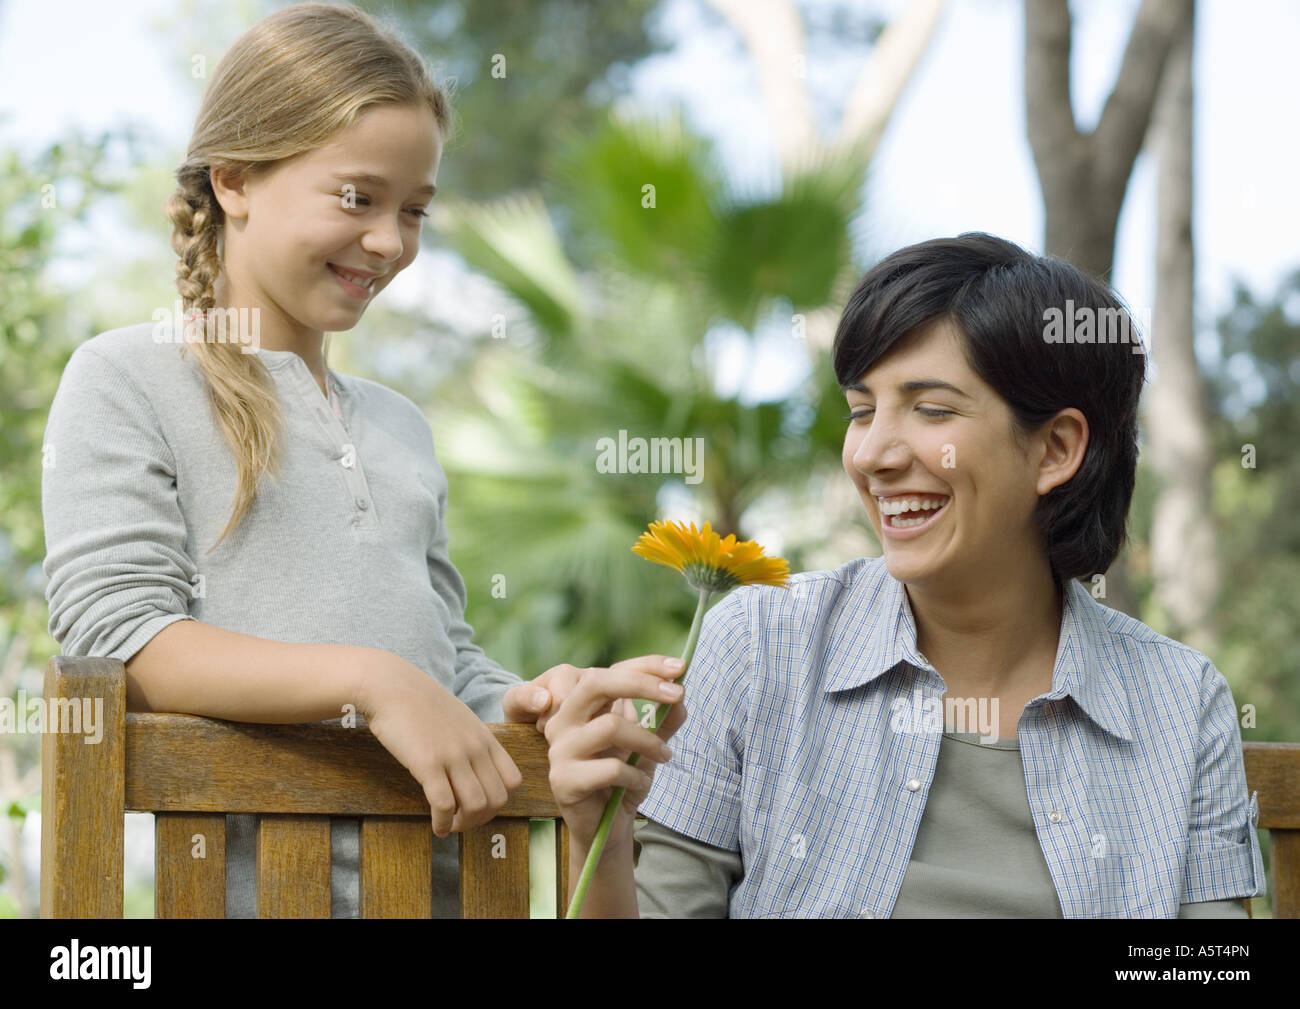 Mother and daughter, mother holding flower - Stock Image